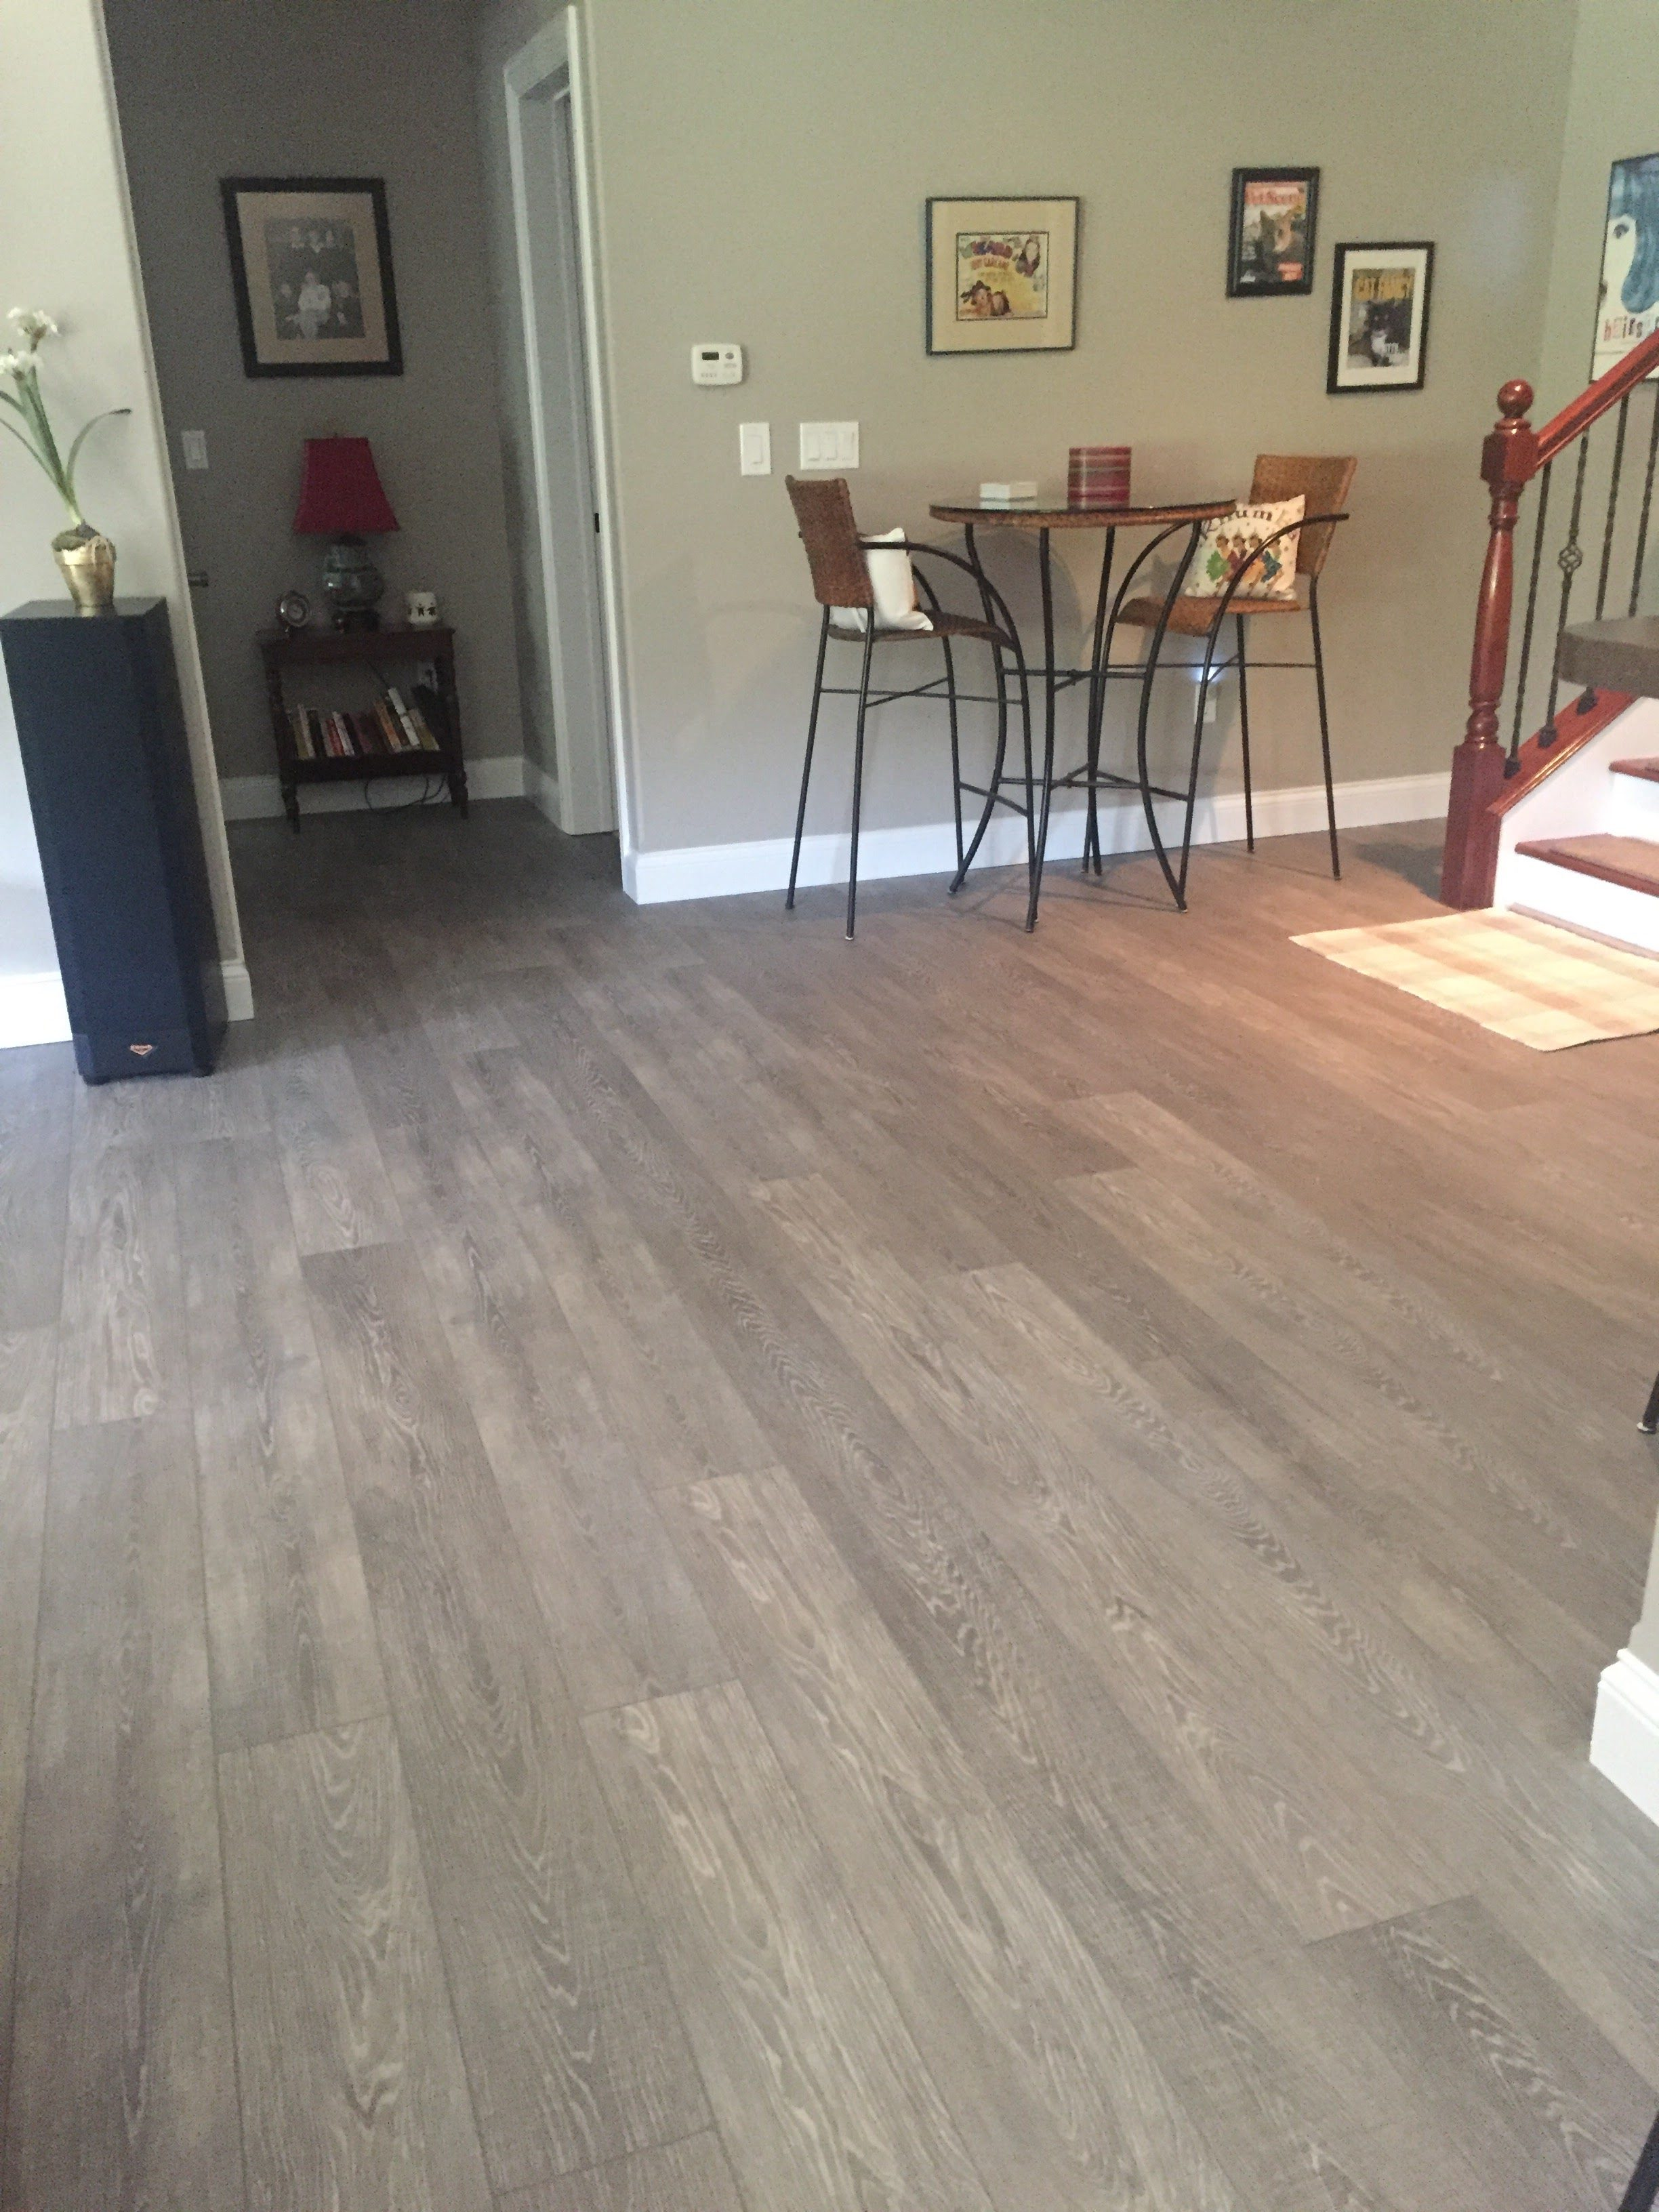 Luxury vinyl plank floors in West County